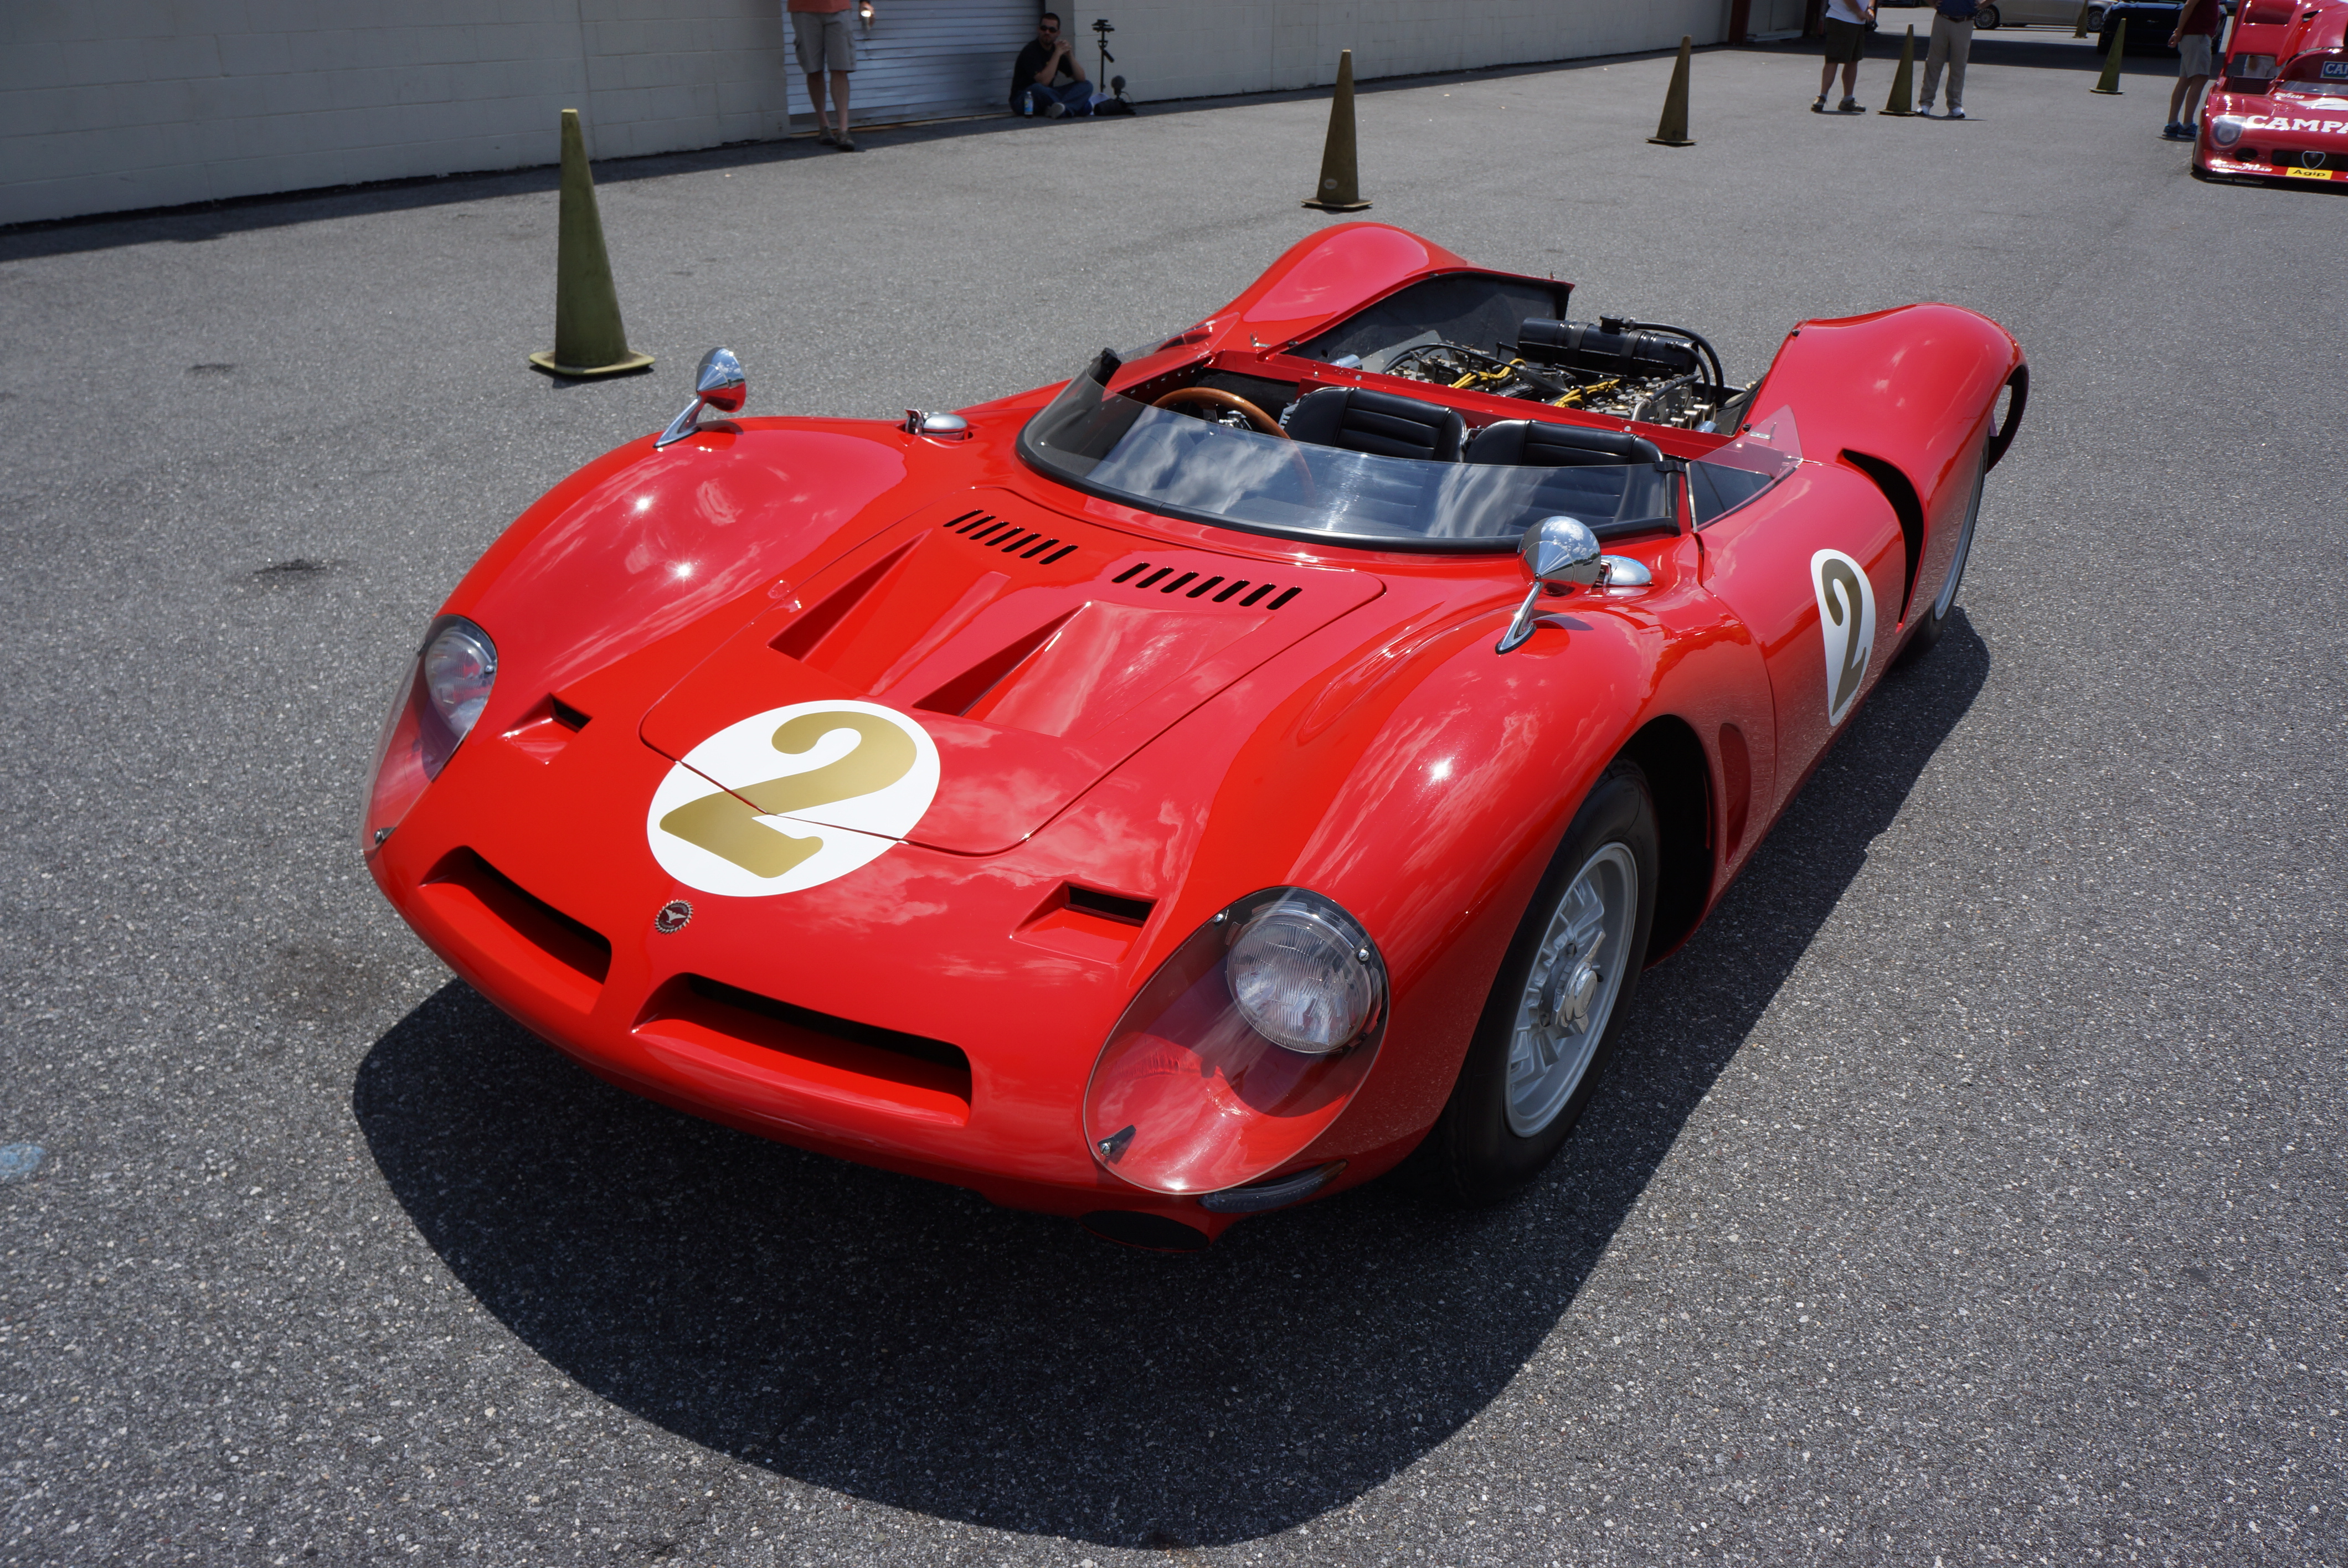 Bizzarrini looks almost two-dimensional from this angle